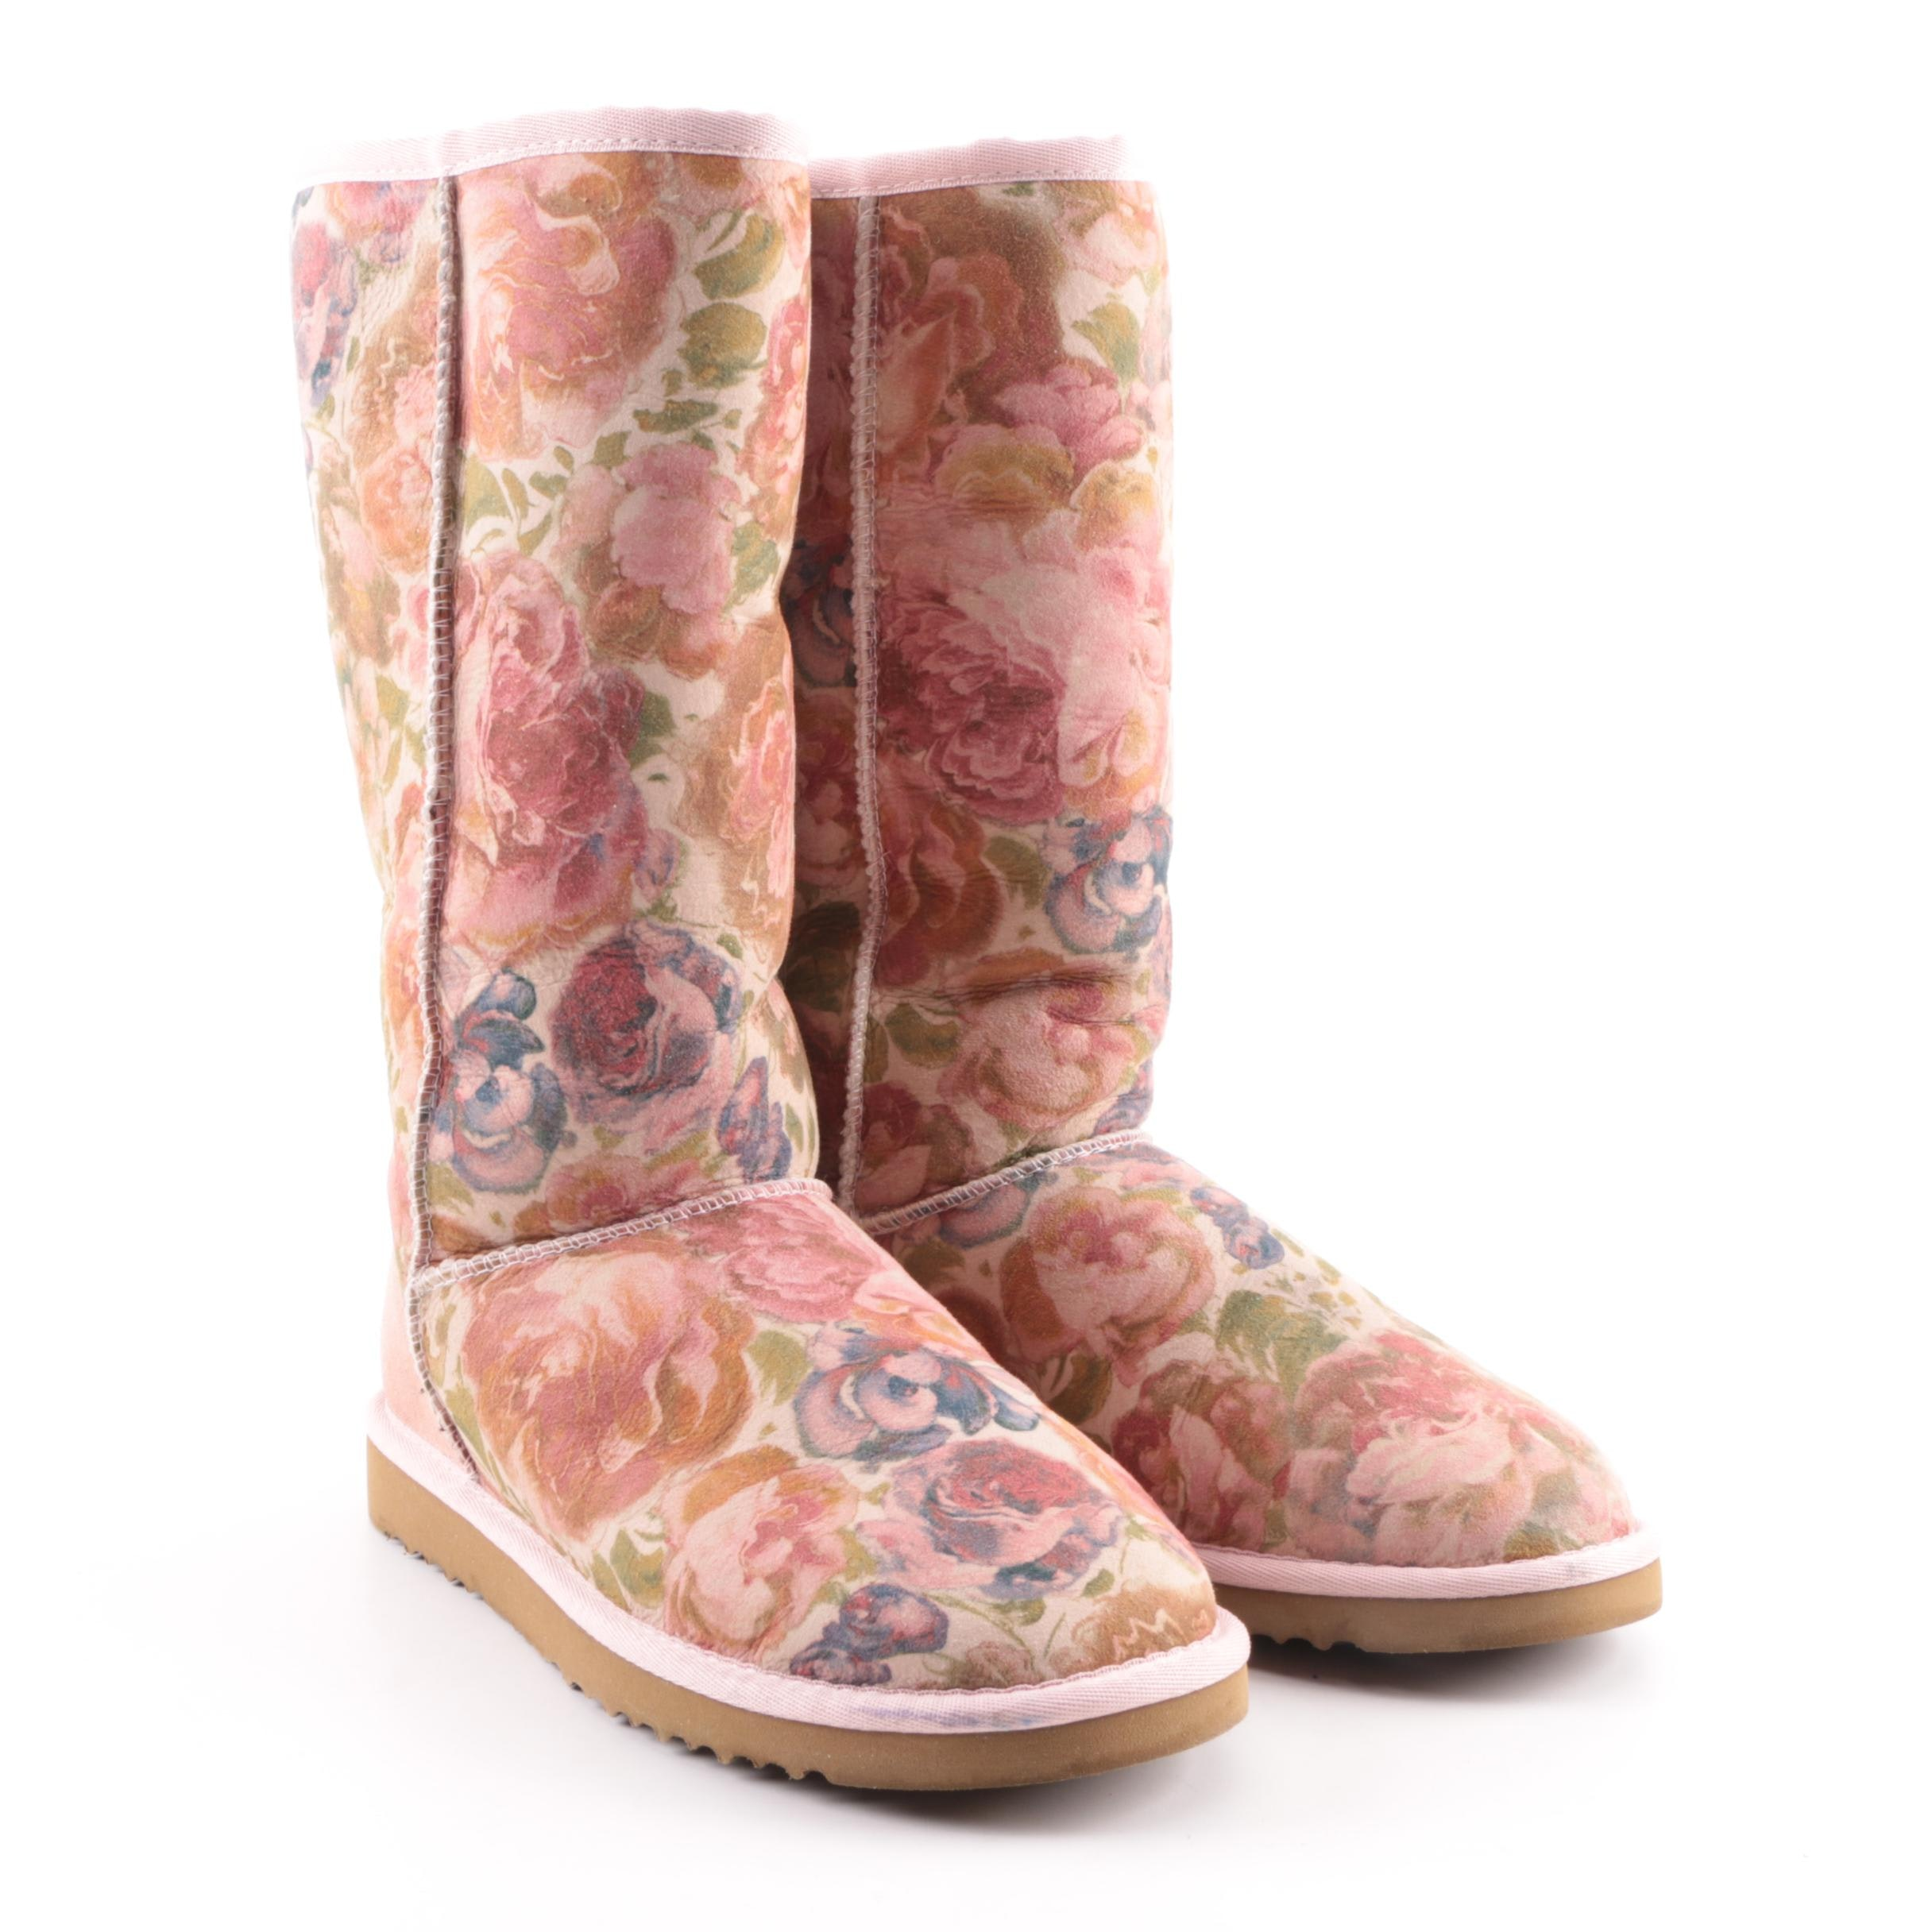 Women's UGG Australia Romantic Classic Tall Floral Print Suede Boots